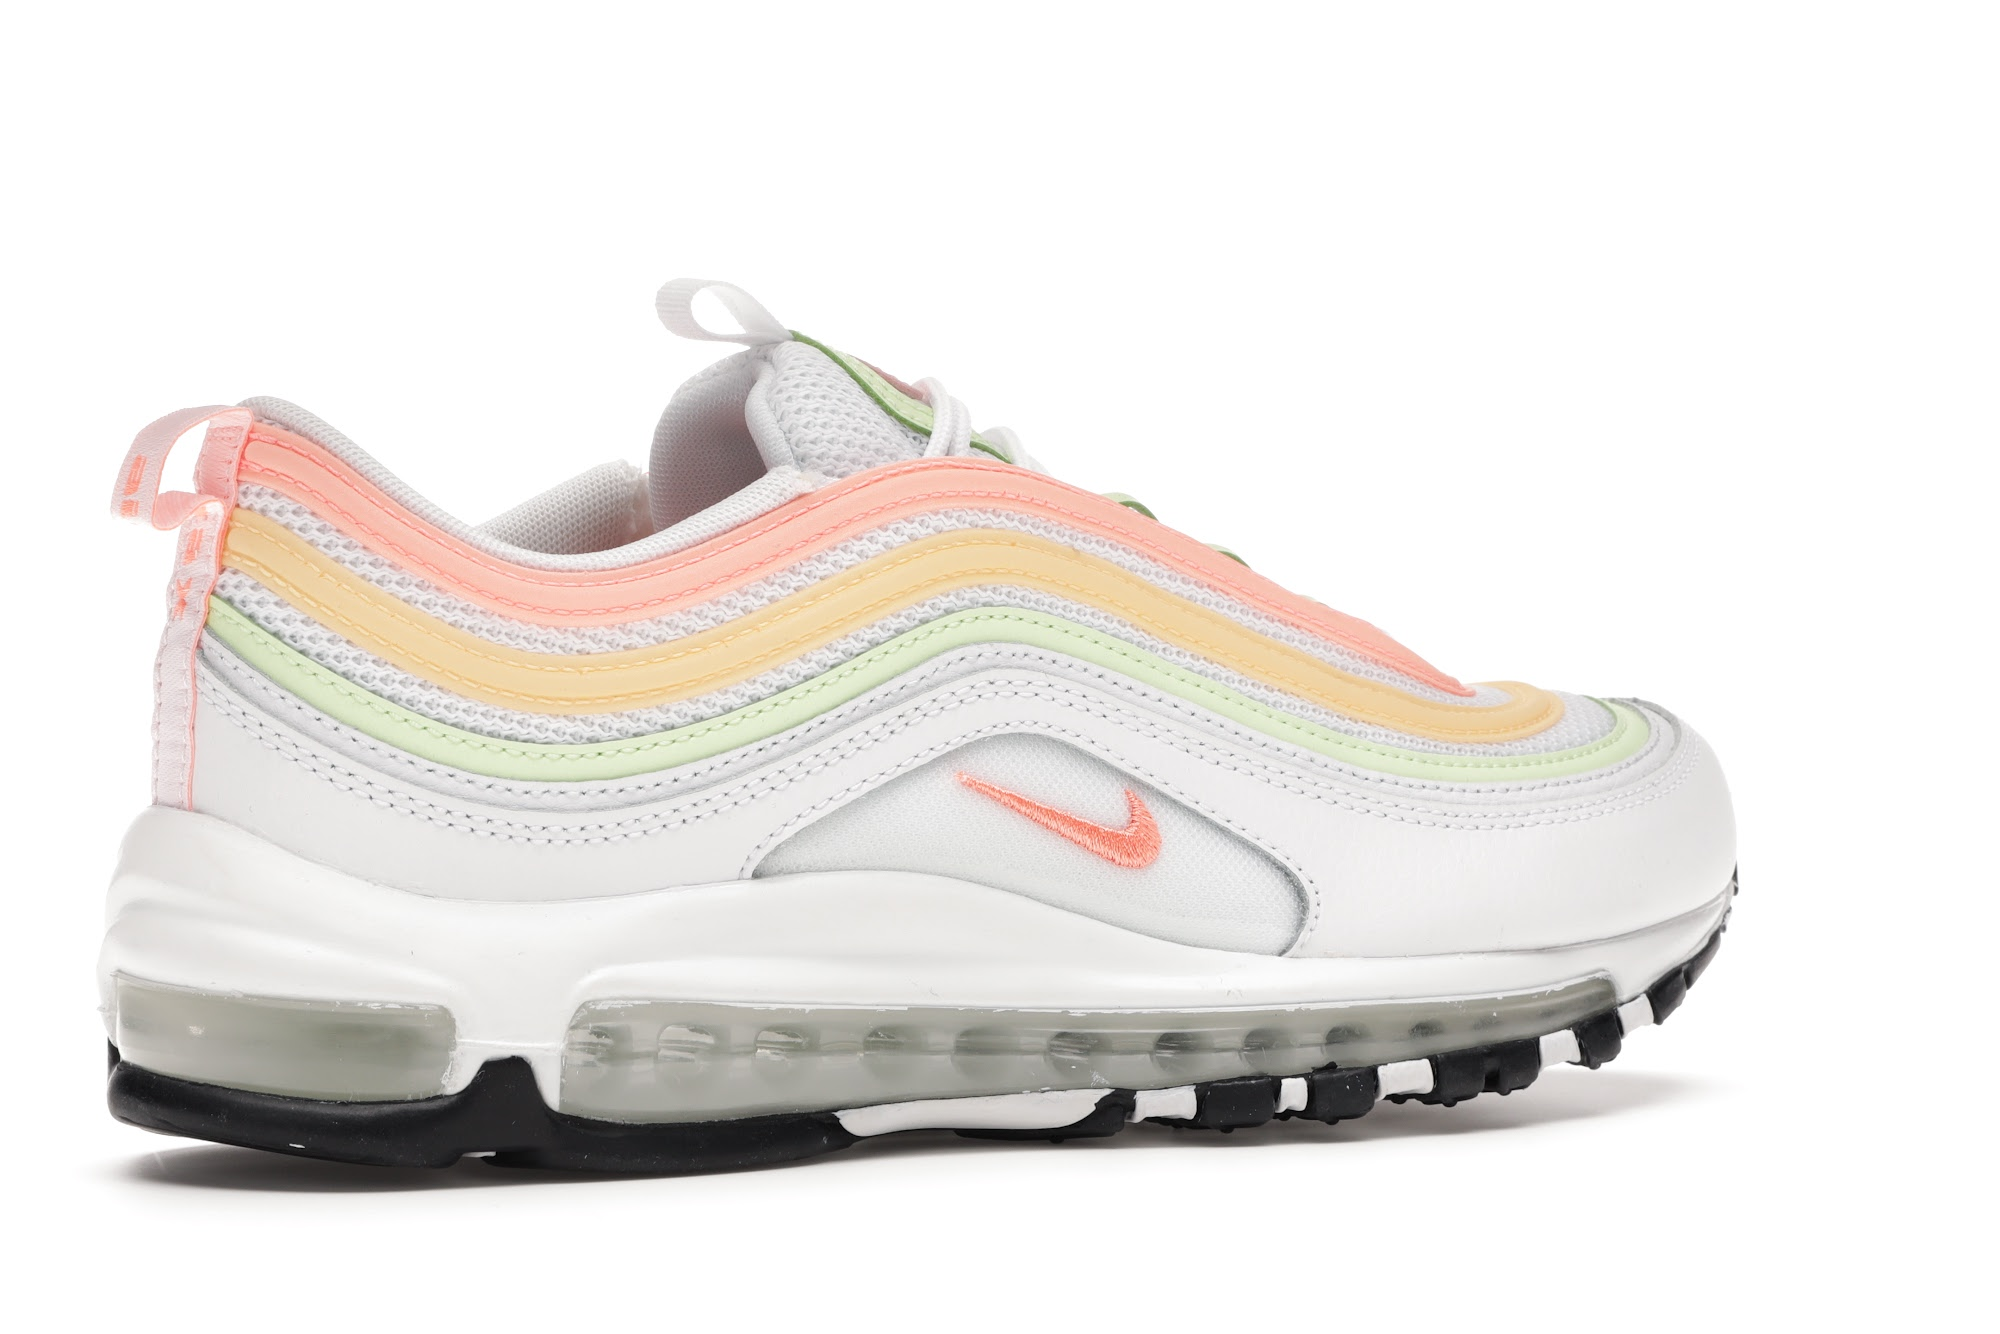 Nike Air Max 97 Melon Tint Barely Volt Atomic Pink (W)